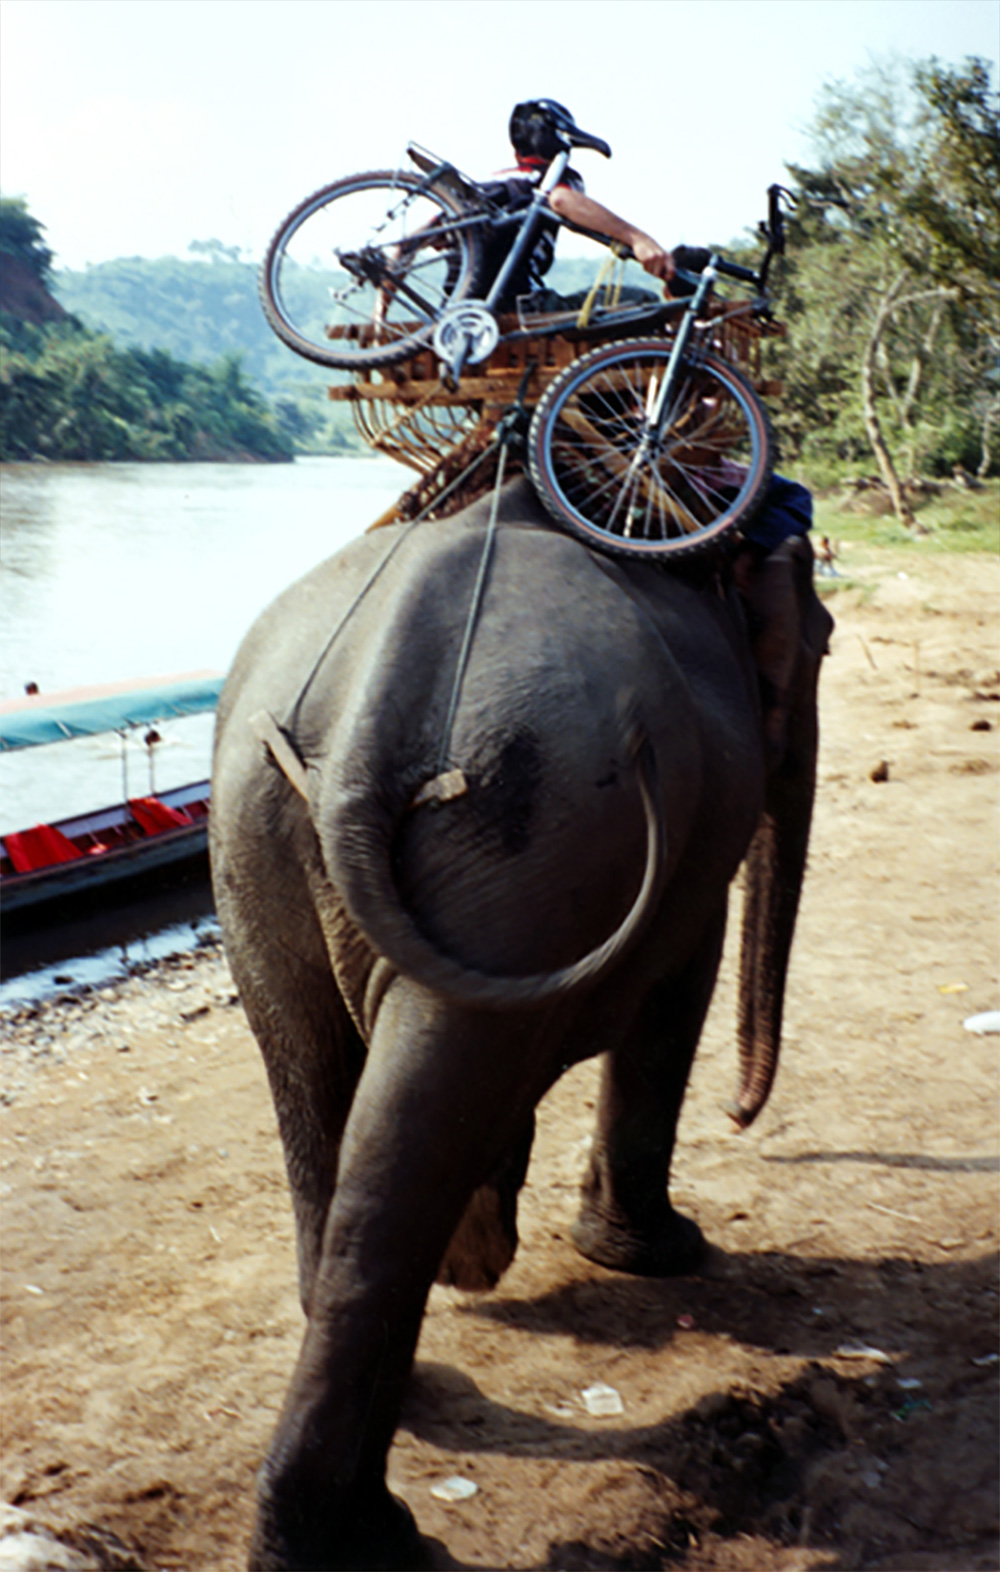 Mekong-River-Taxi,-Golden-Triangle,-Northern-Laos